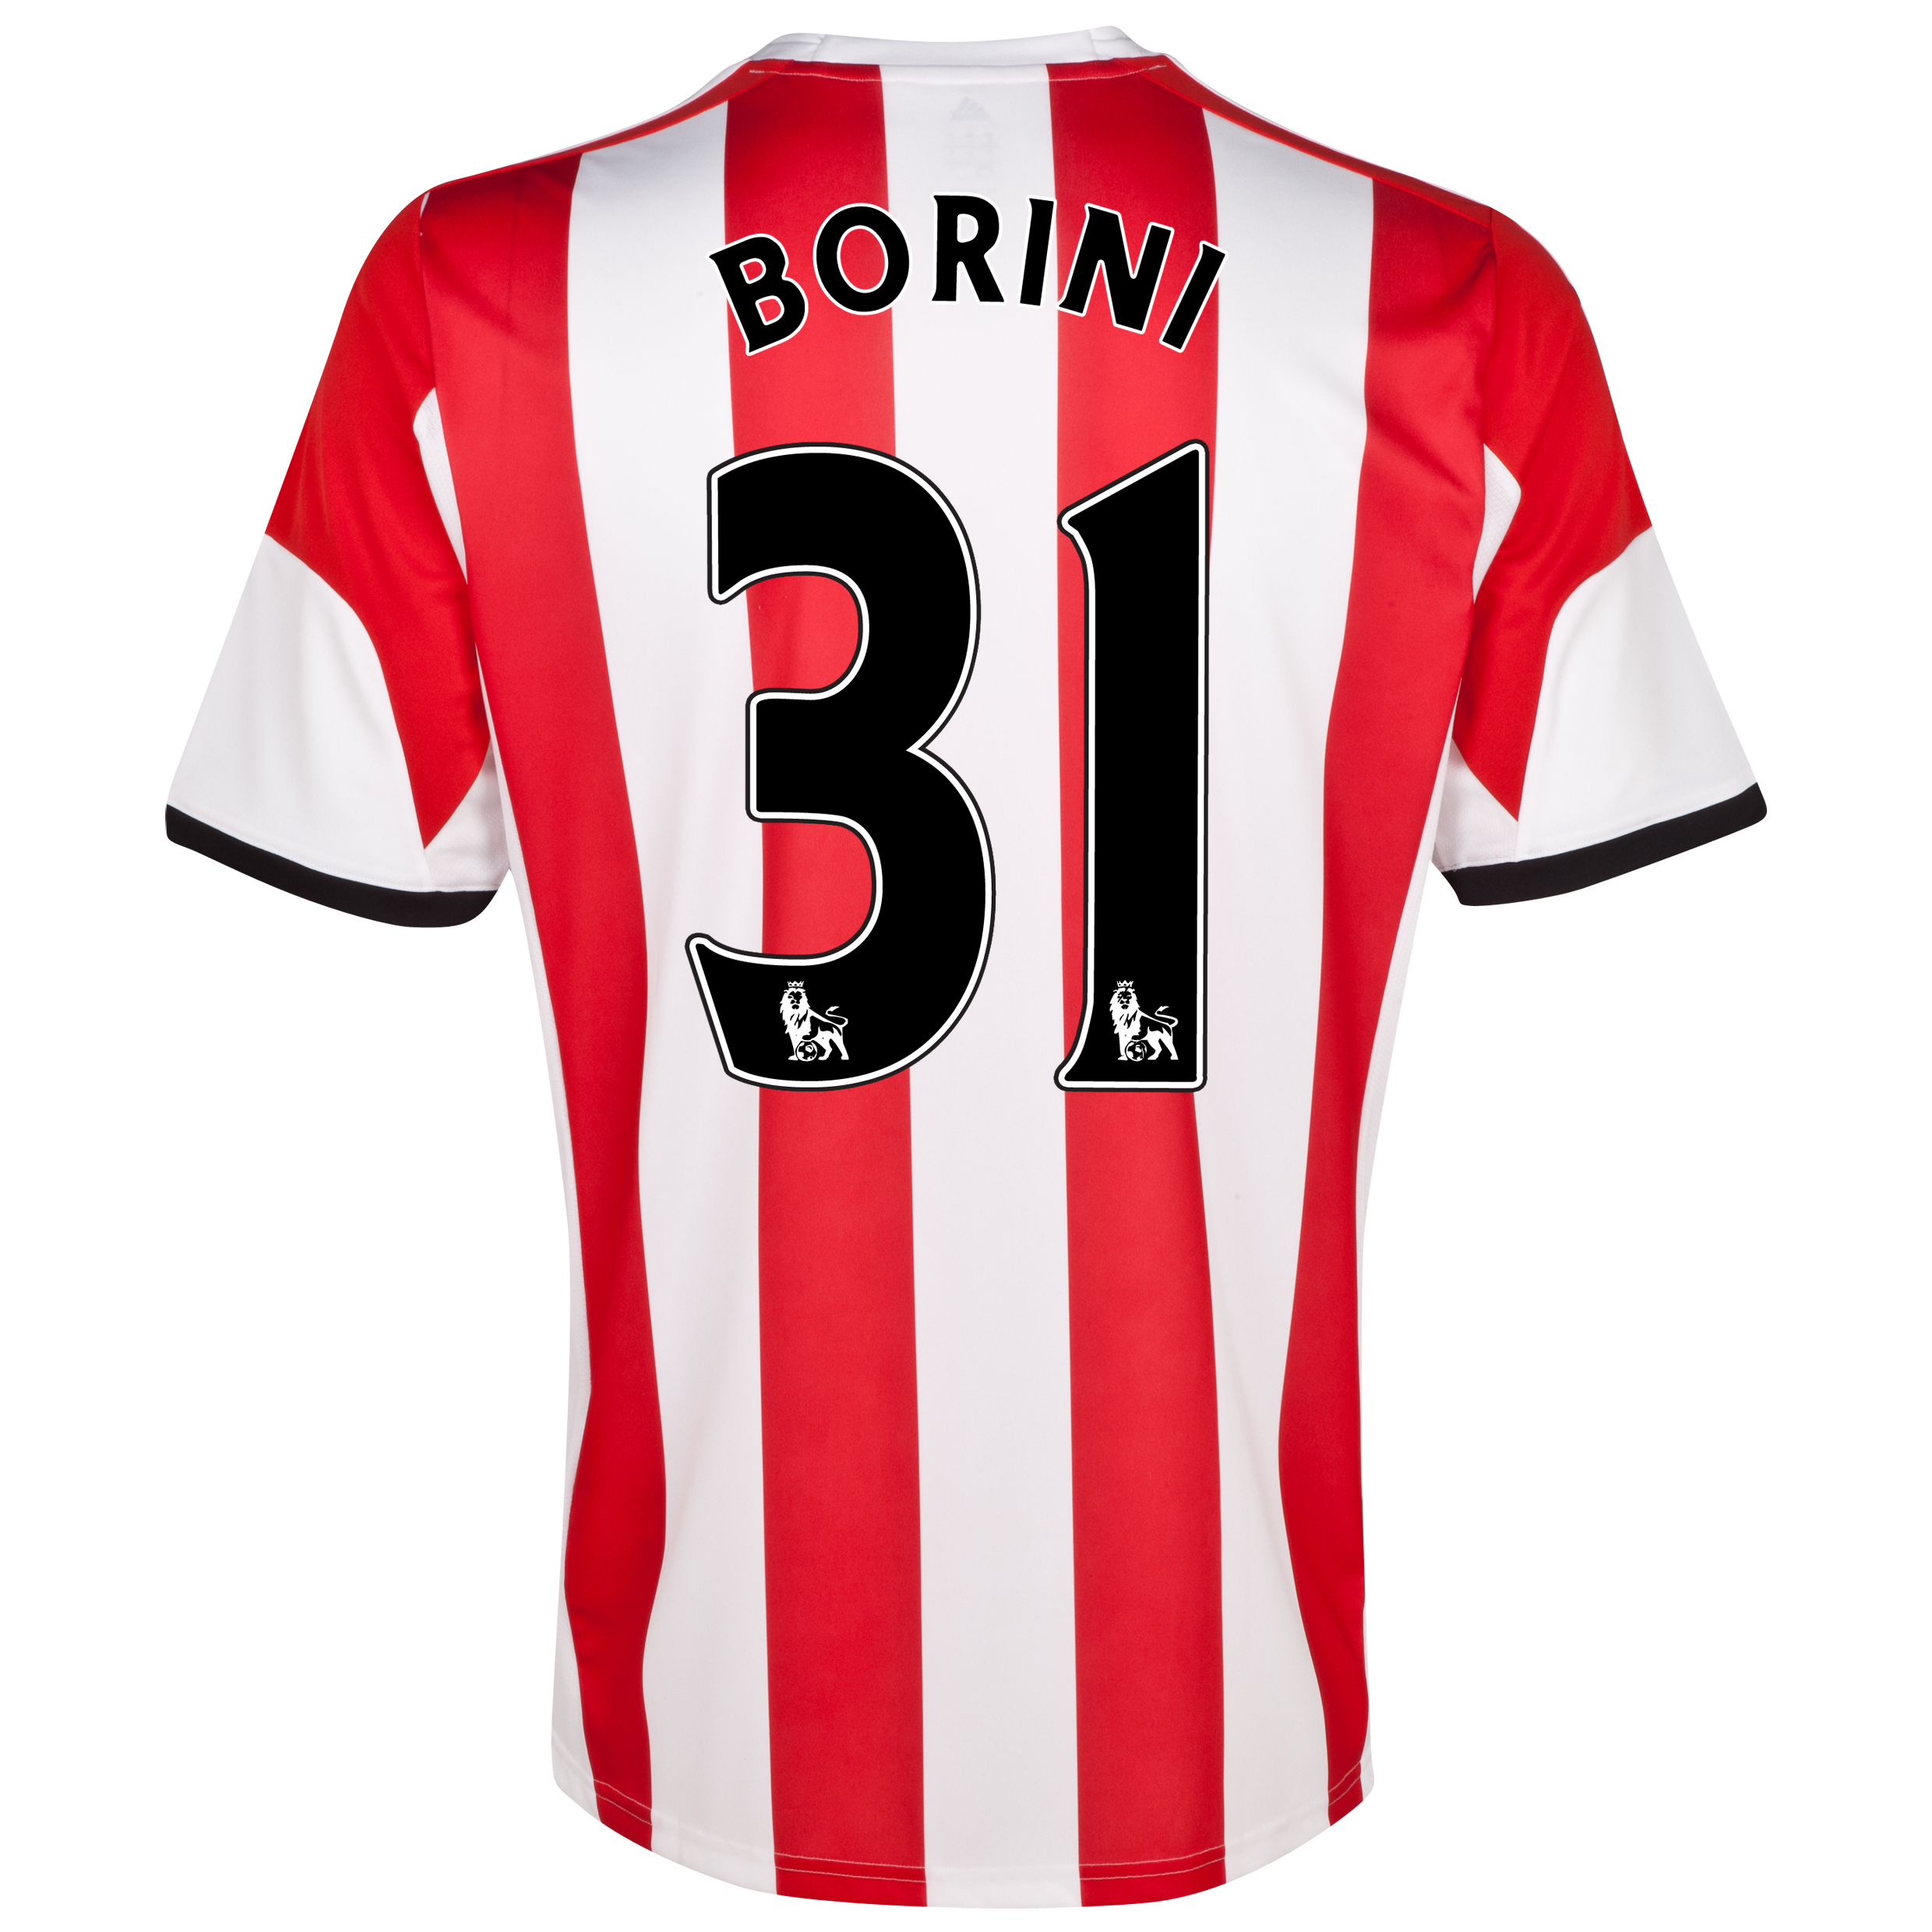 Sunderland Home Shirt 2013/14 with Borini 31 printing